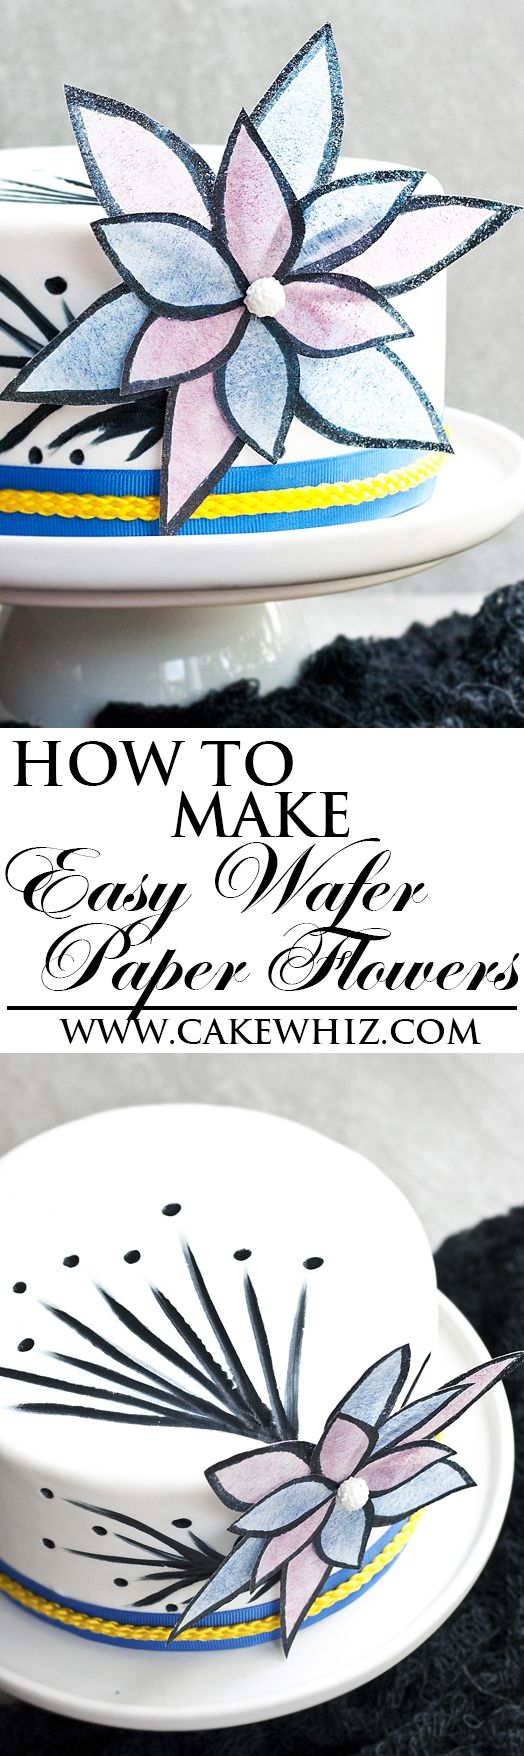 Learn How To Make This Easy And Pretty Wafer Paper Flower In About